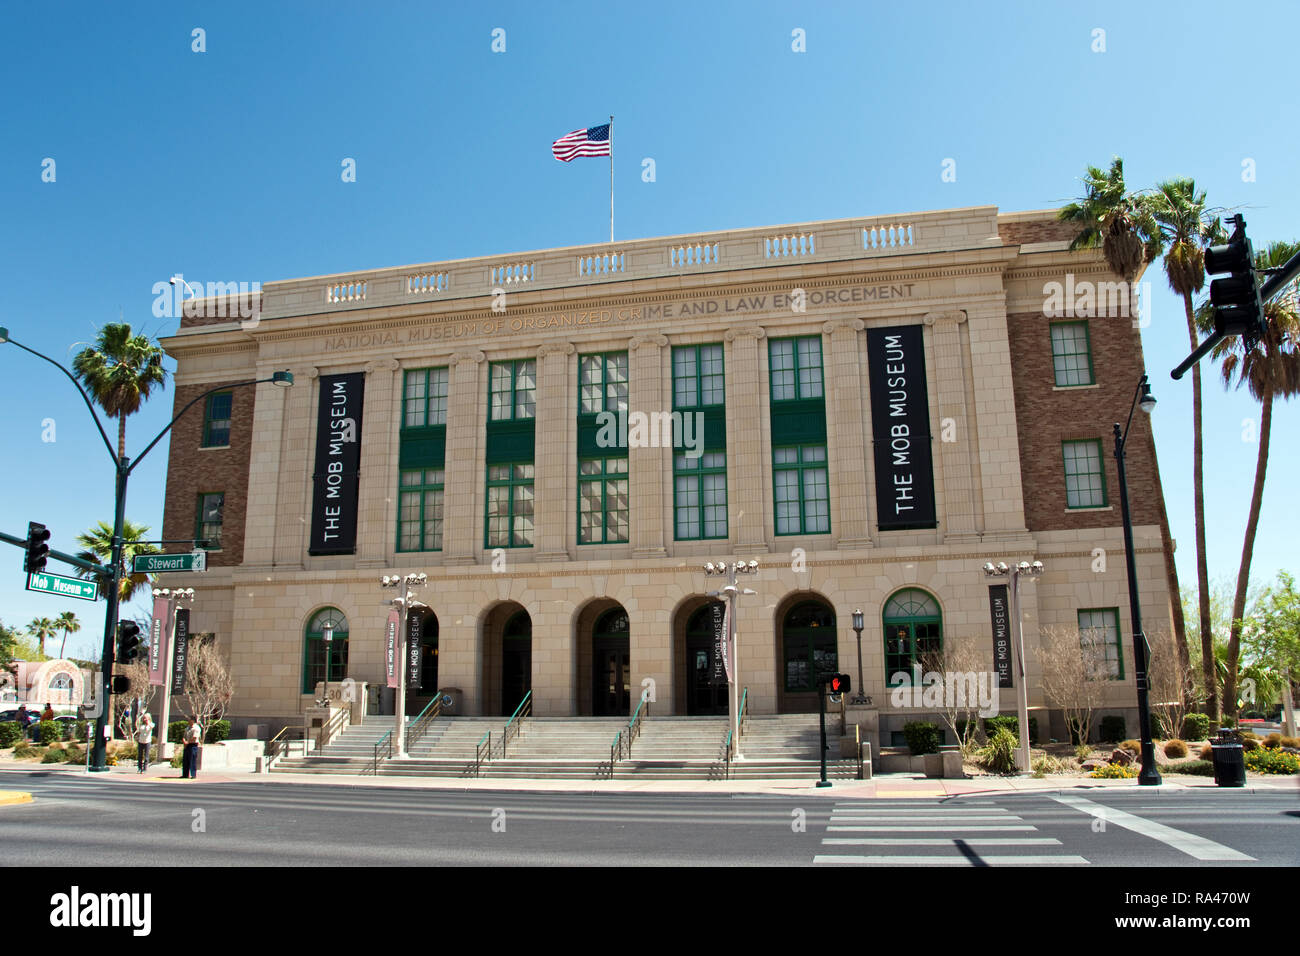 """The National Museum of Organized Crime and Law Enforcement, the """"Mob Museum,"""" in Las Vegas, is dedicated to the history of organized crime in America. Stock Photo"""